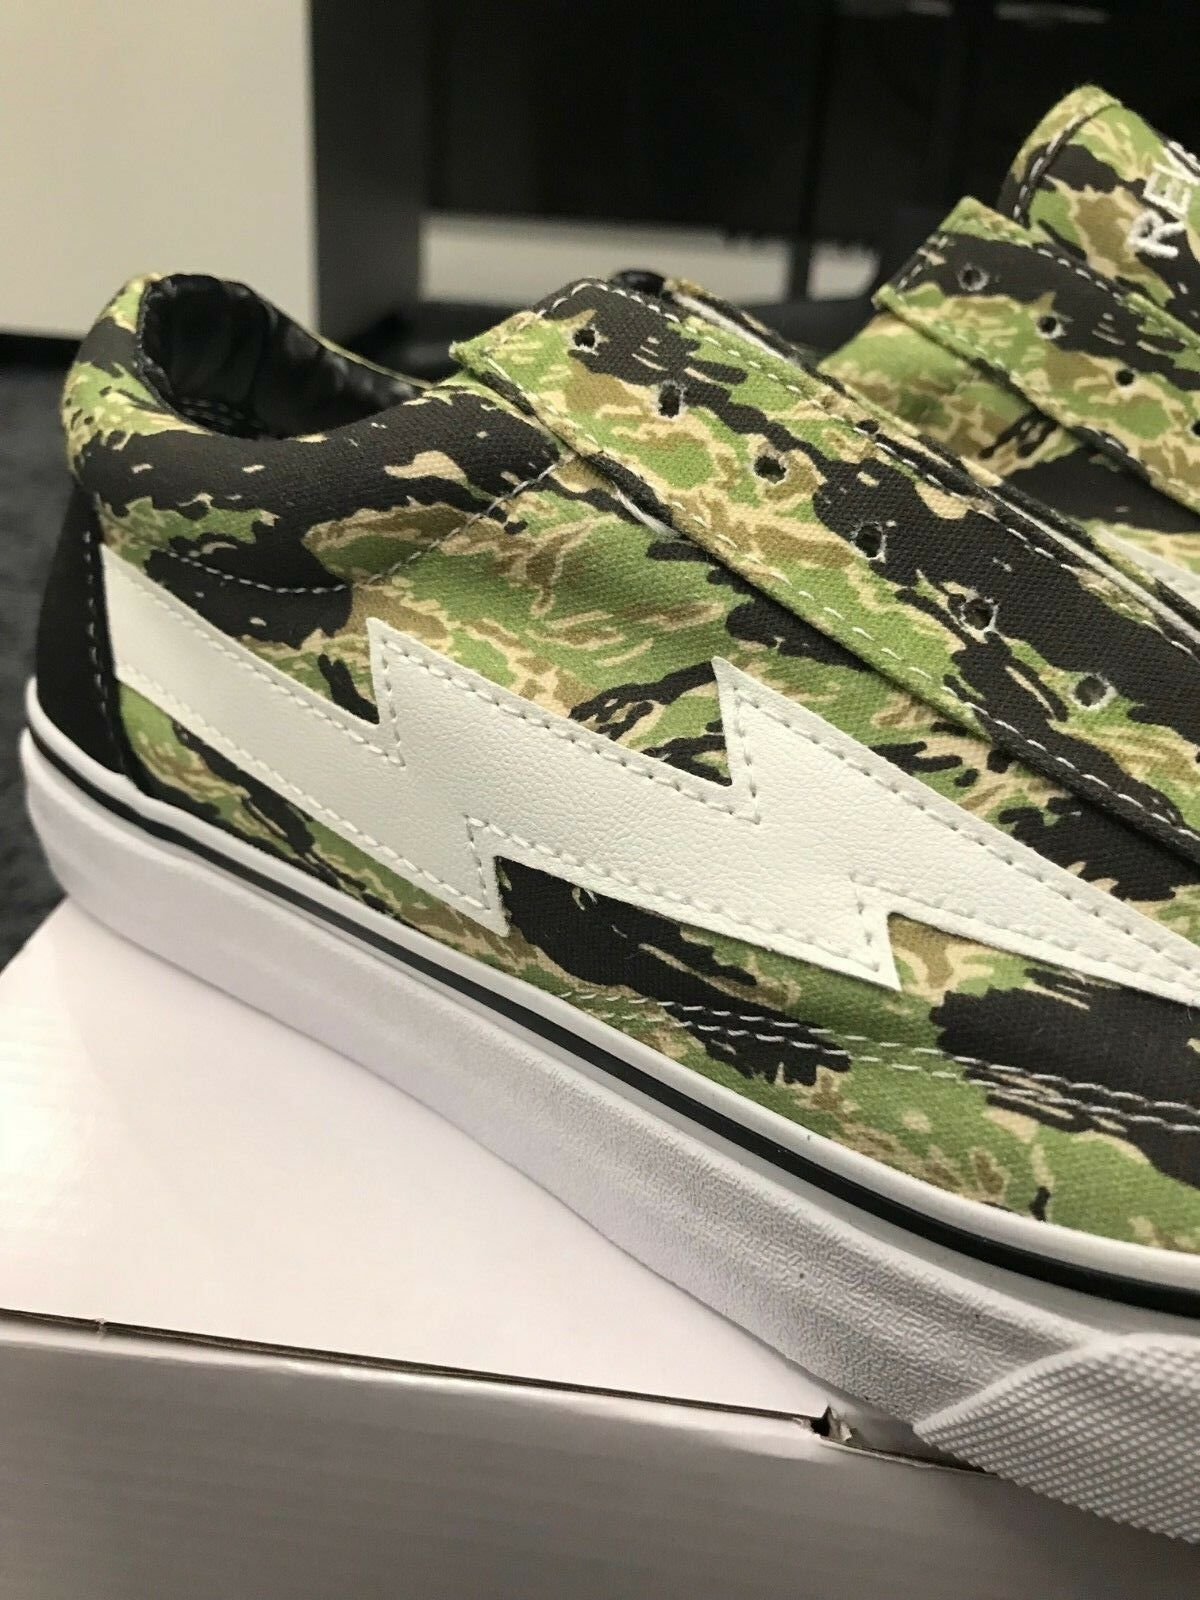 Revenge x Storm Khaki Camo Size 9 In Hand and Ready to Ship 100% Authentic